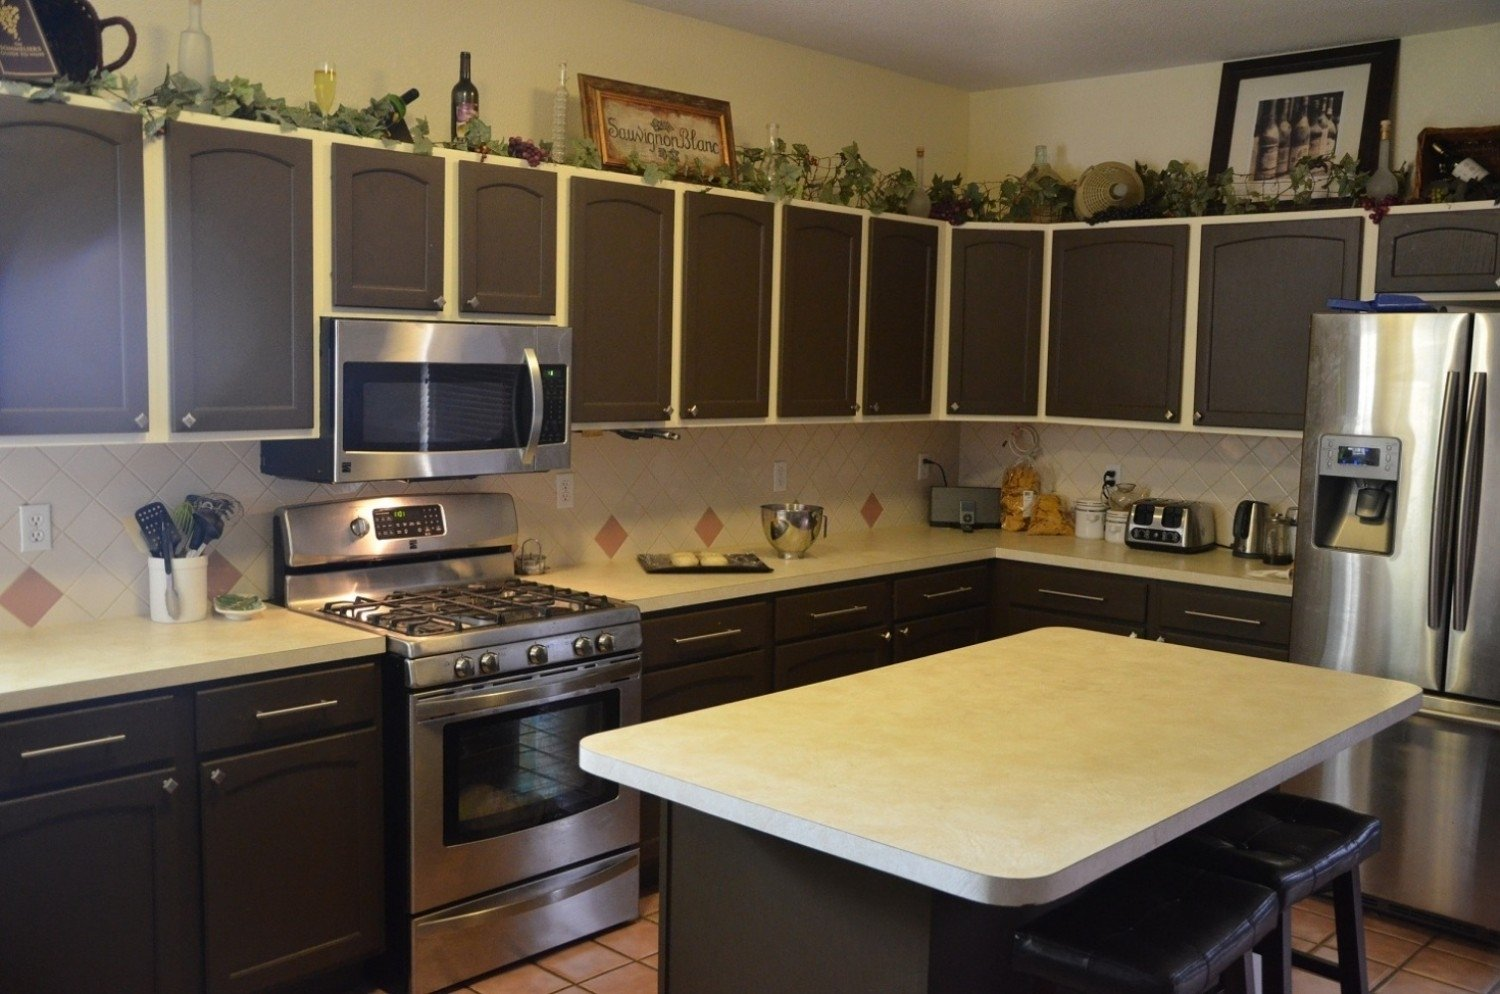 10 Lovely Painting Ideas For Kitchen Cabinets staggering kitchen cabinets visi build paint for kitchen cabinets 2020